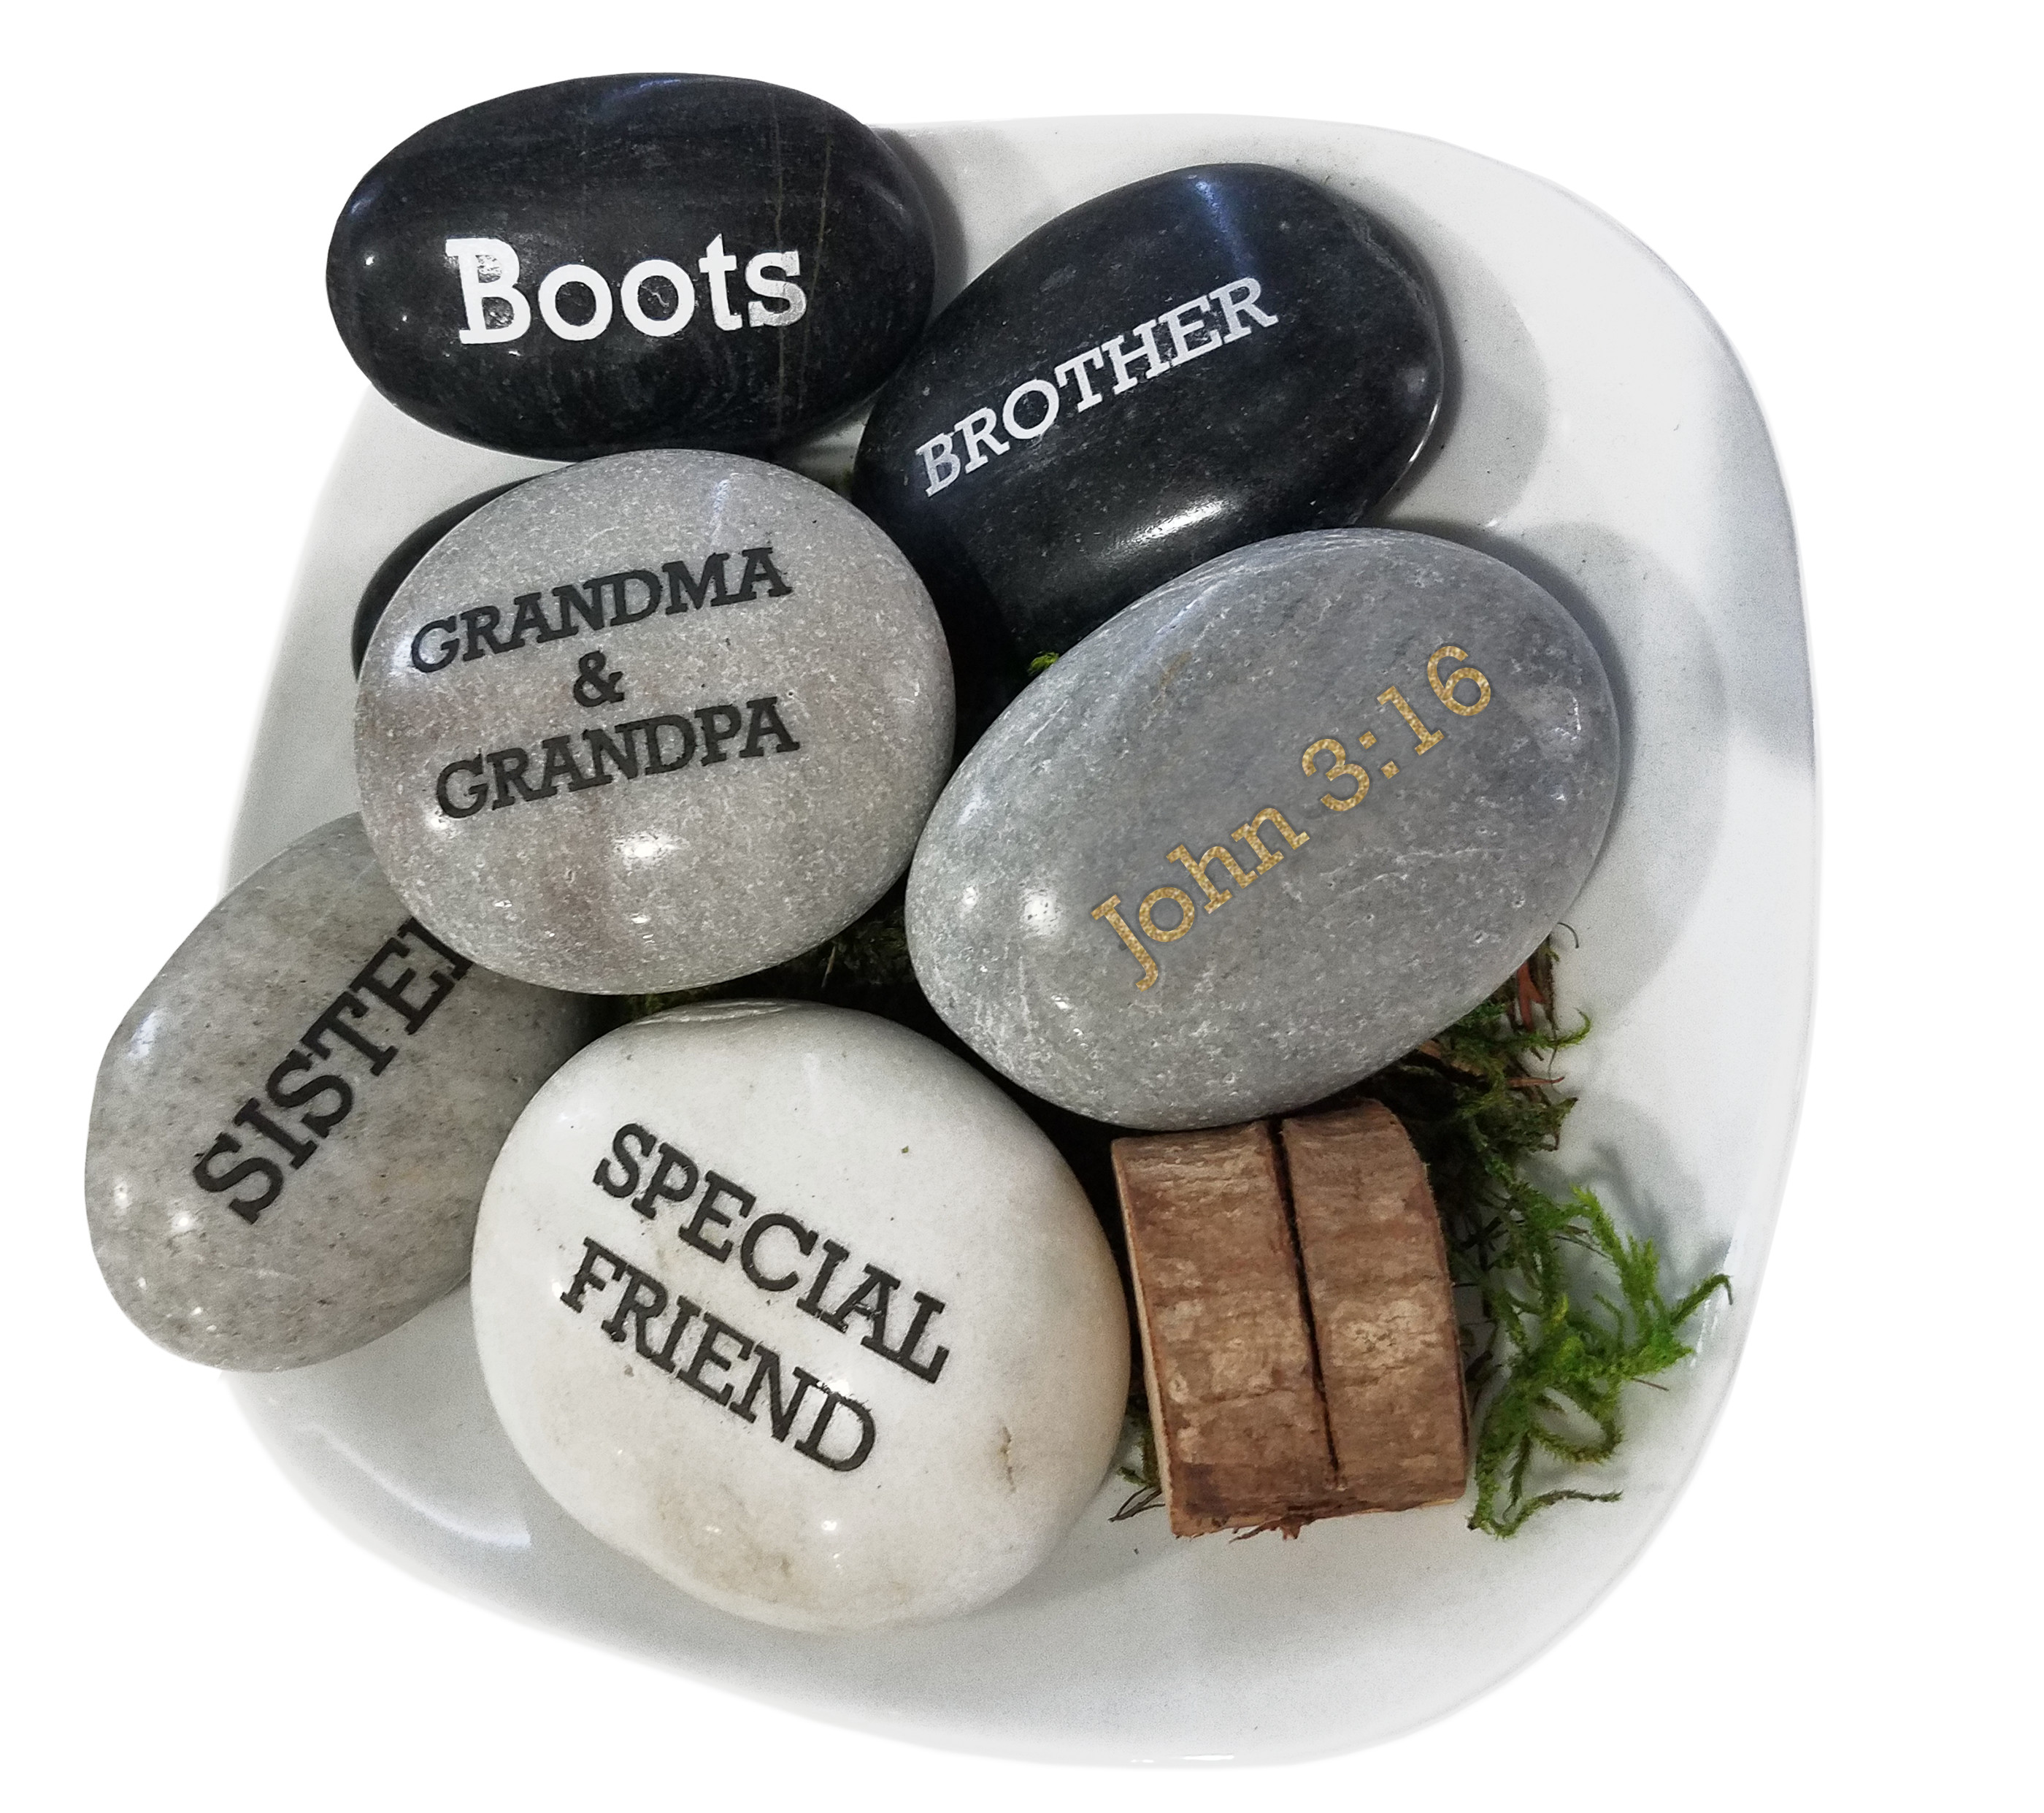 'You Rock!' Personalized Natural Garden Stone Paper Weight